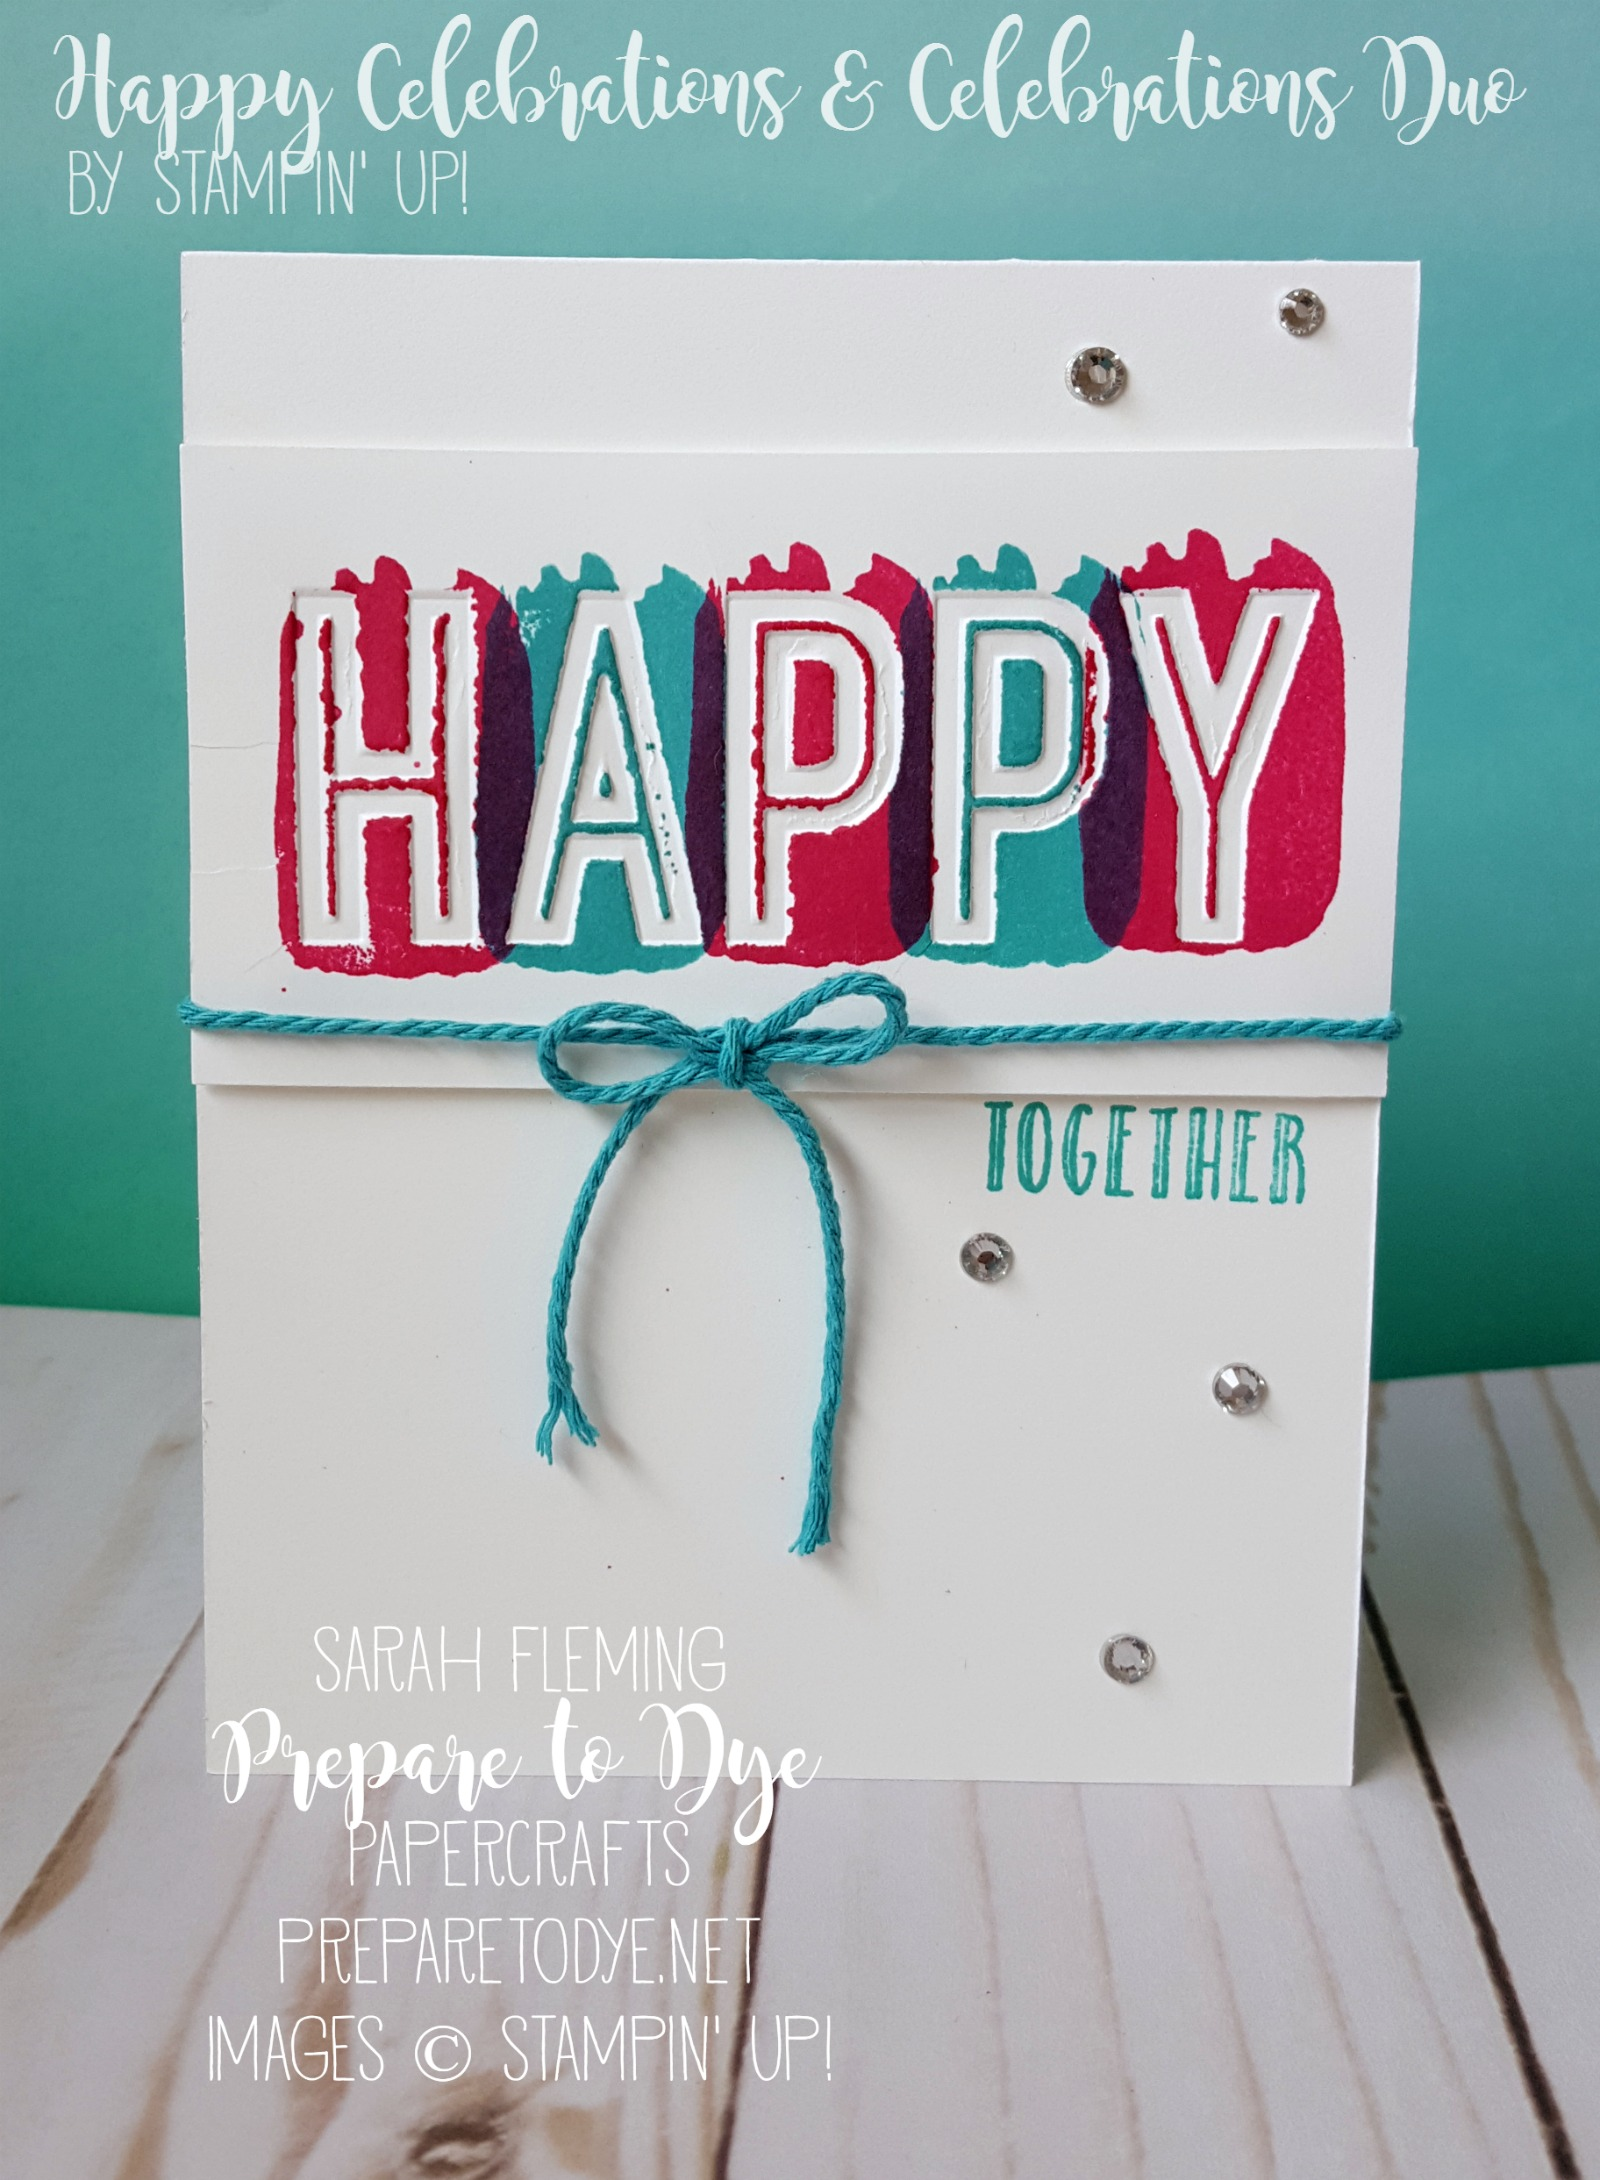 Stampin' Up! Happy Celebrations stamp set & Celebrations Duo debossing/embossing folders - handmade card - Sarah Fleming - Prepare to Dye Papercrafts